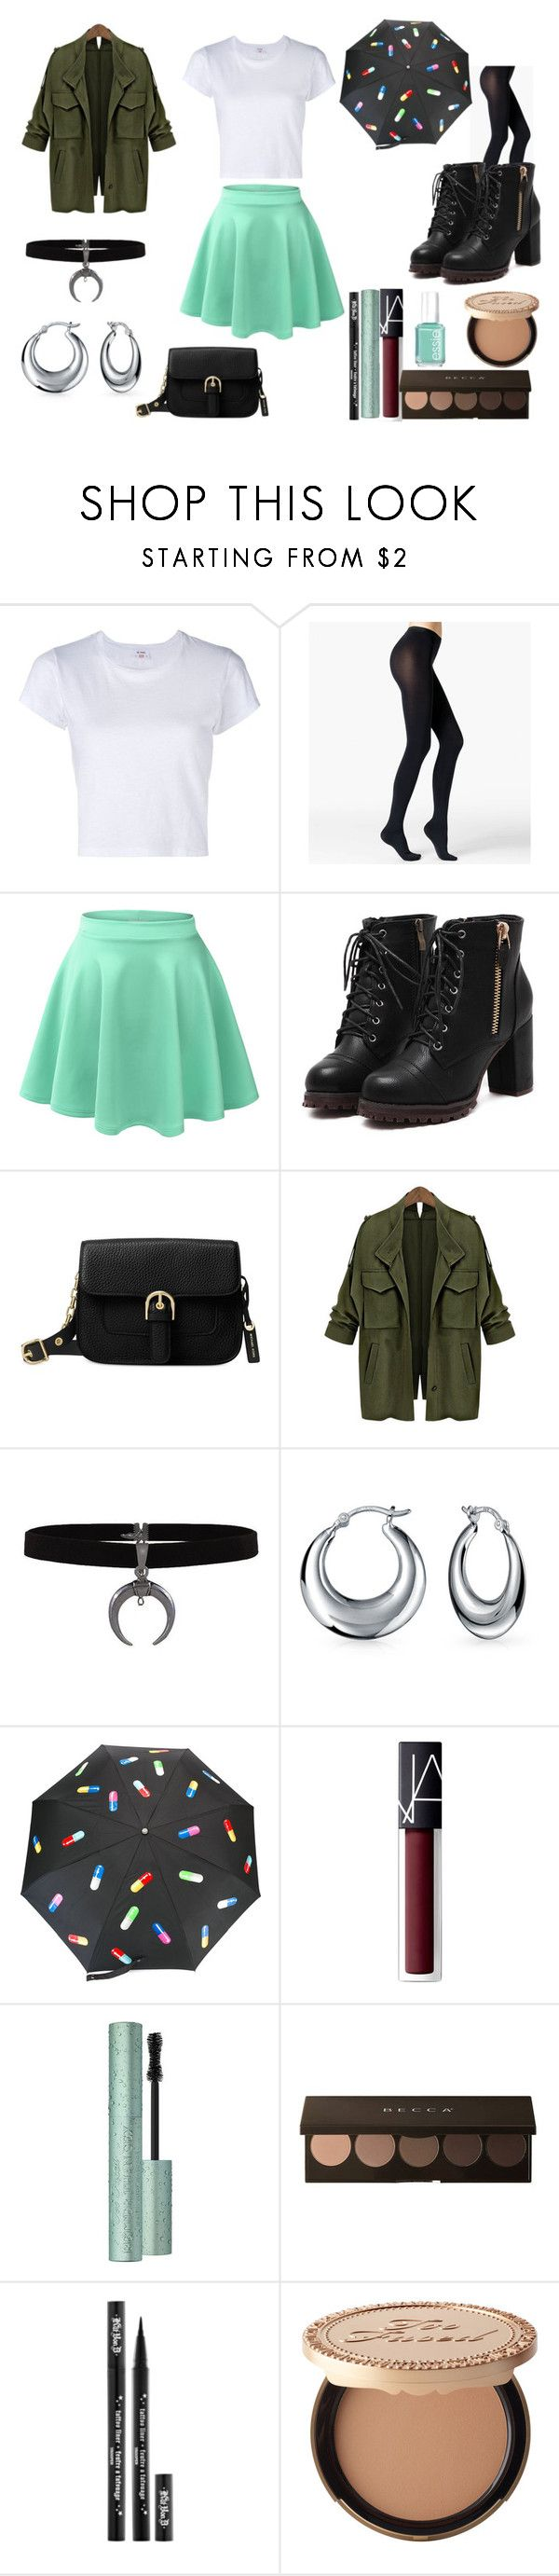 """""""rainy fall first date"""" by nikkiasheeshie on Polyvore featuring moda, RE/DONE, Fogal, LE3NO, Michael Kors, Bling Jewelry, NARS Cosmetics, Kat Von D, Too Faced Cosmetics ve Essie"""